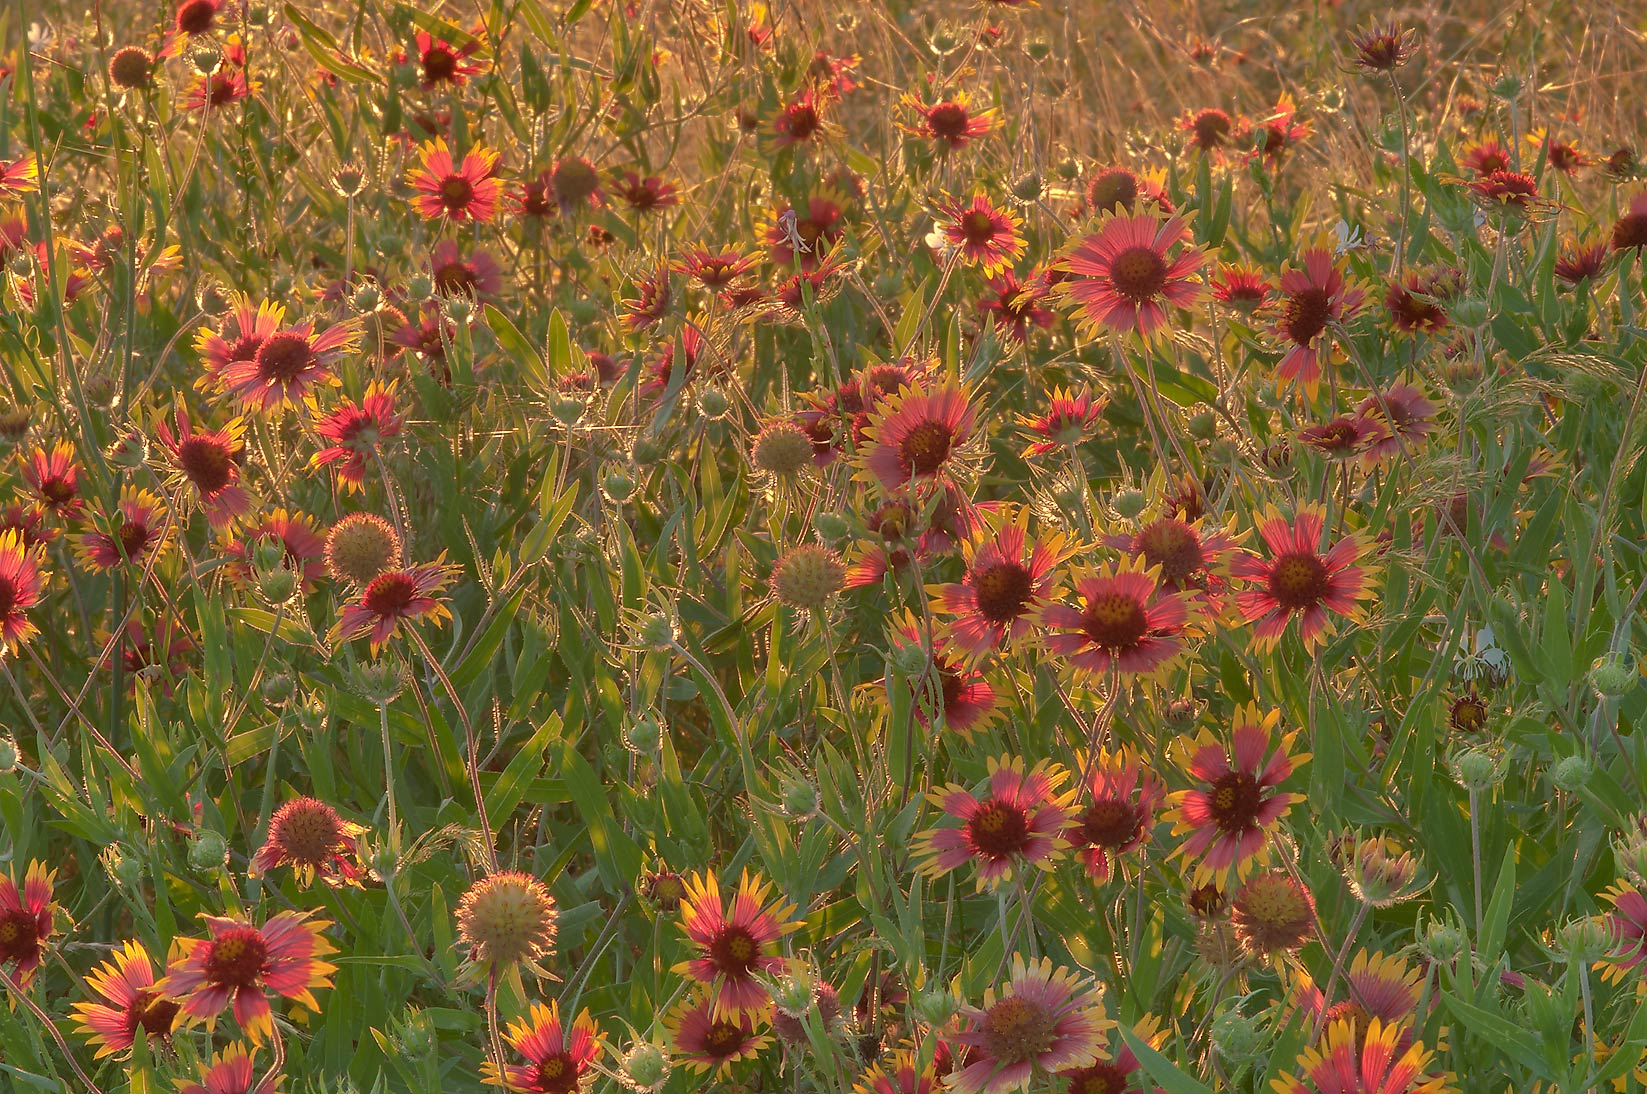 Indian blanket flowers in Old Baylor Park. Independence, Texas